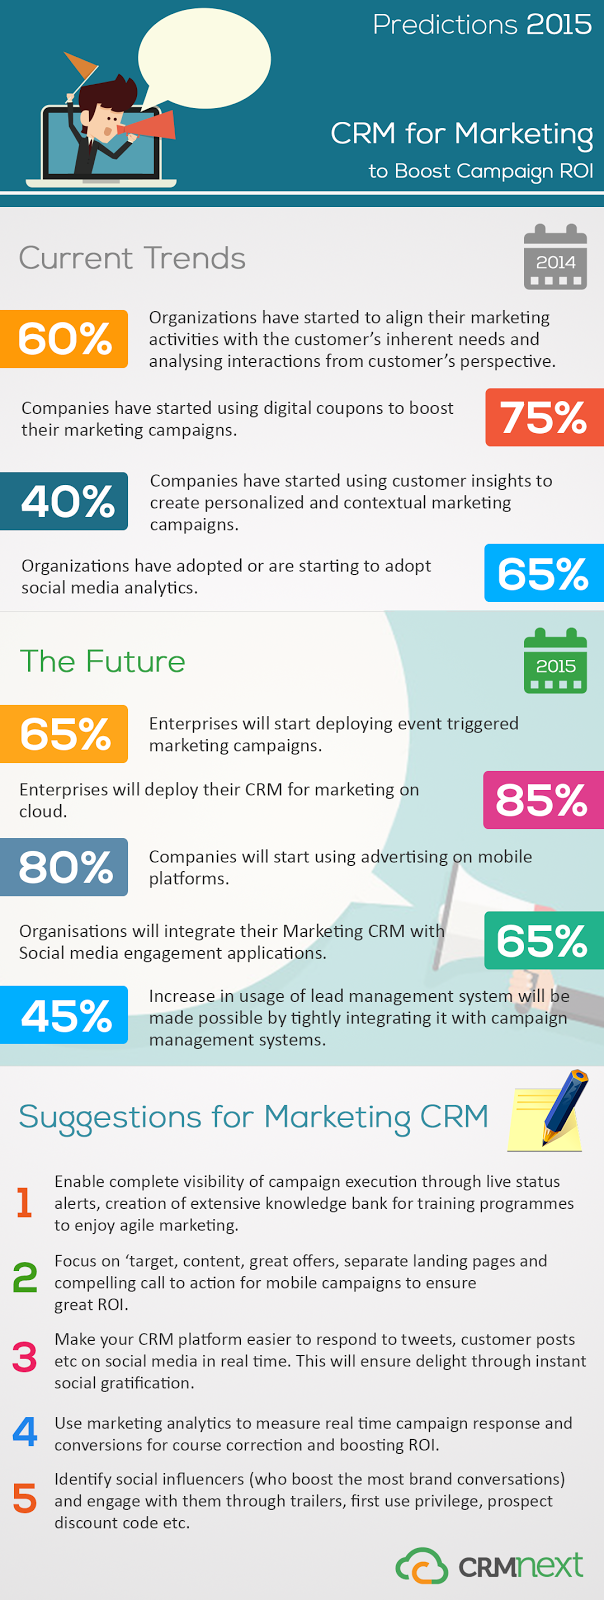 Predictions 2015: CRM for Marketing to Boost Campaign ROI